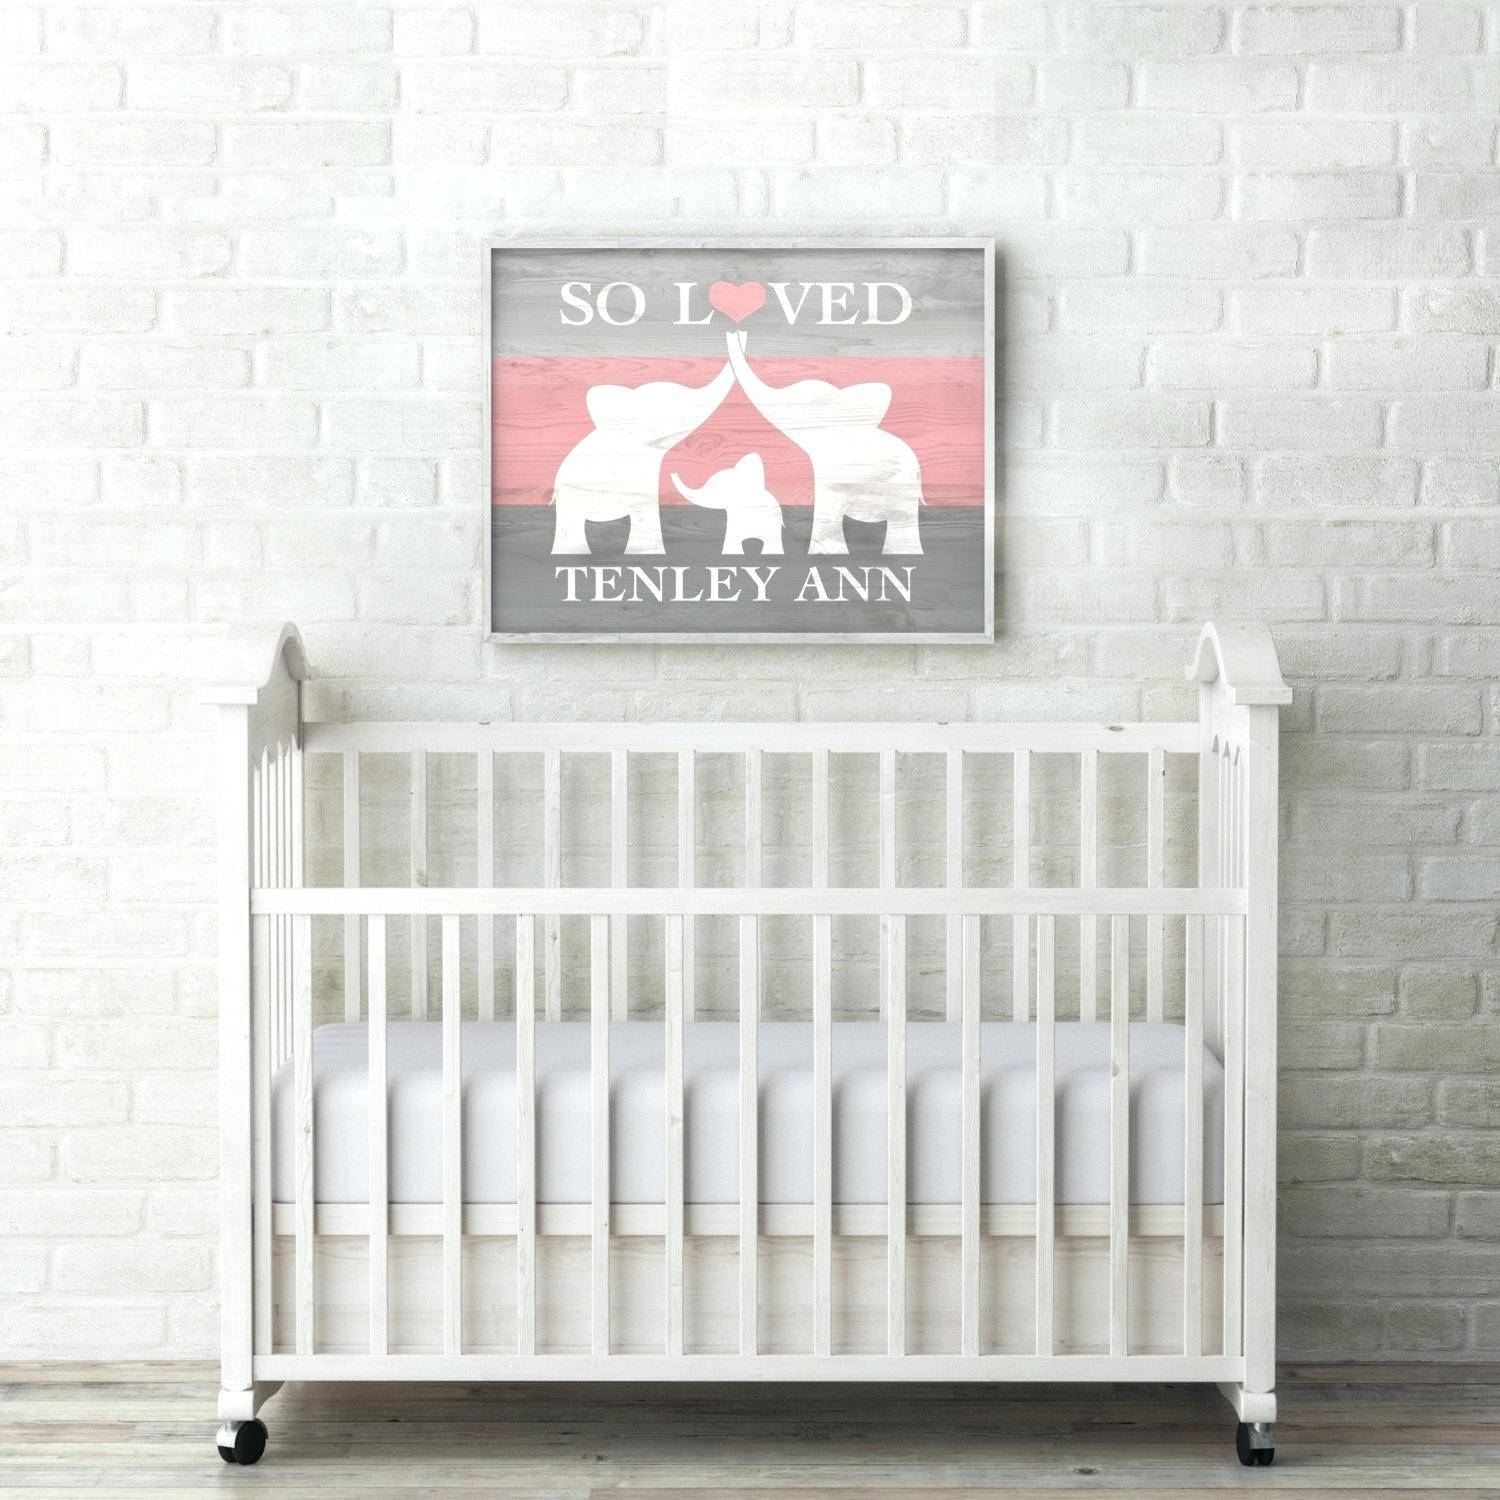 Baby Nursery Framed Wall Art Top Nursery Framed Wall Art Wall Art Within Best And Newest Nursery Framed Wall Art (View 3 of 20)